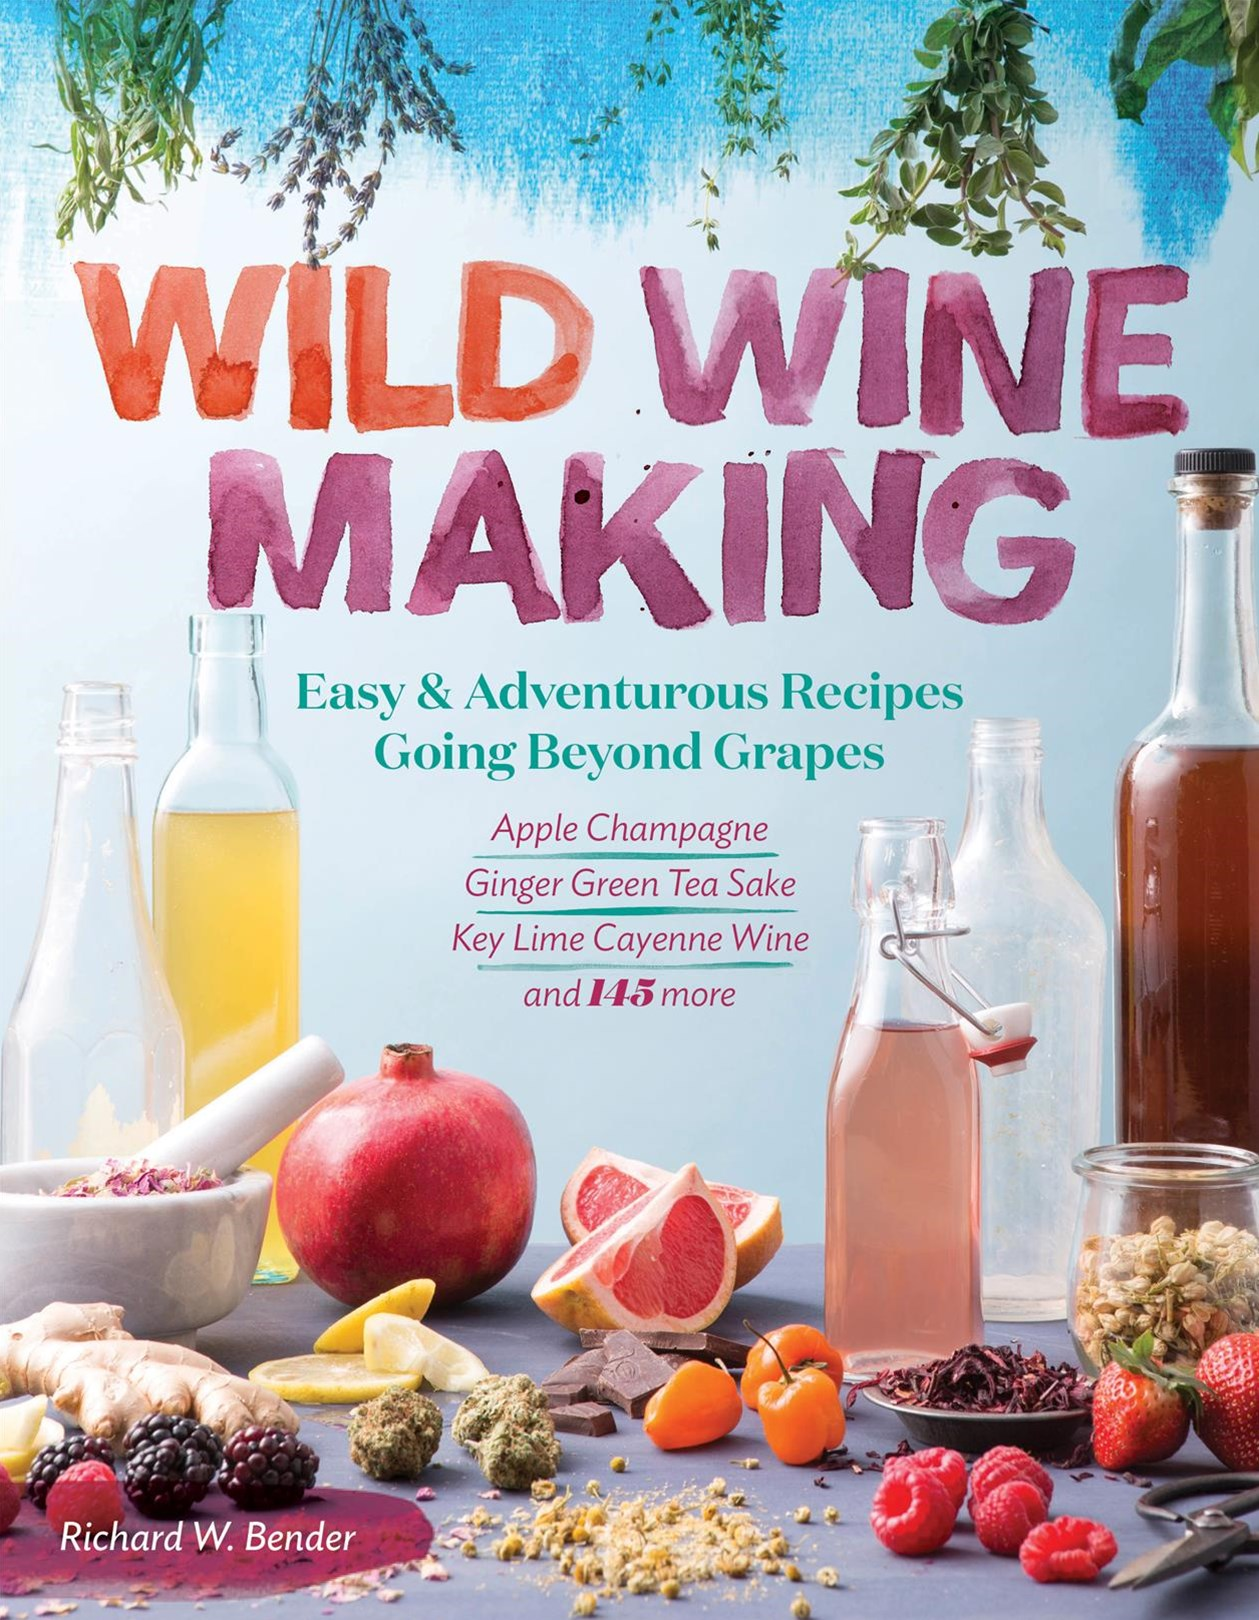 Wild Winemaking: Easy and Adventurous Recipes Going Beyond Grapes